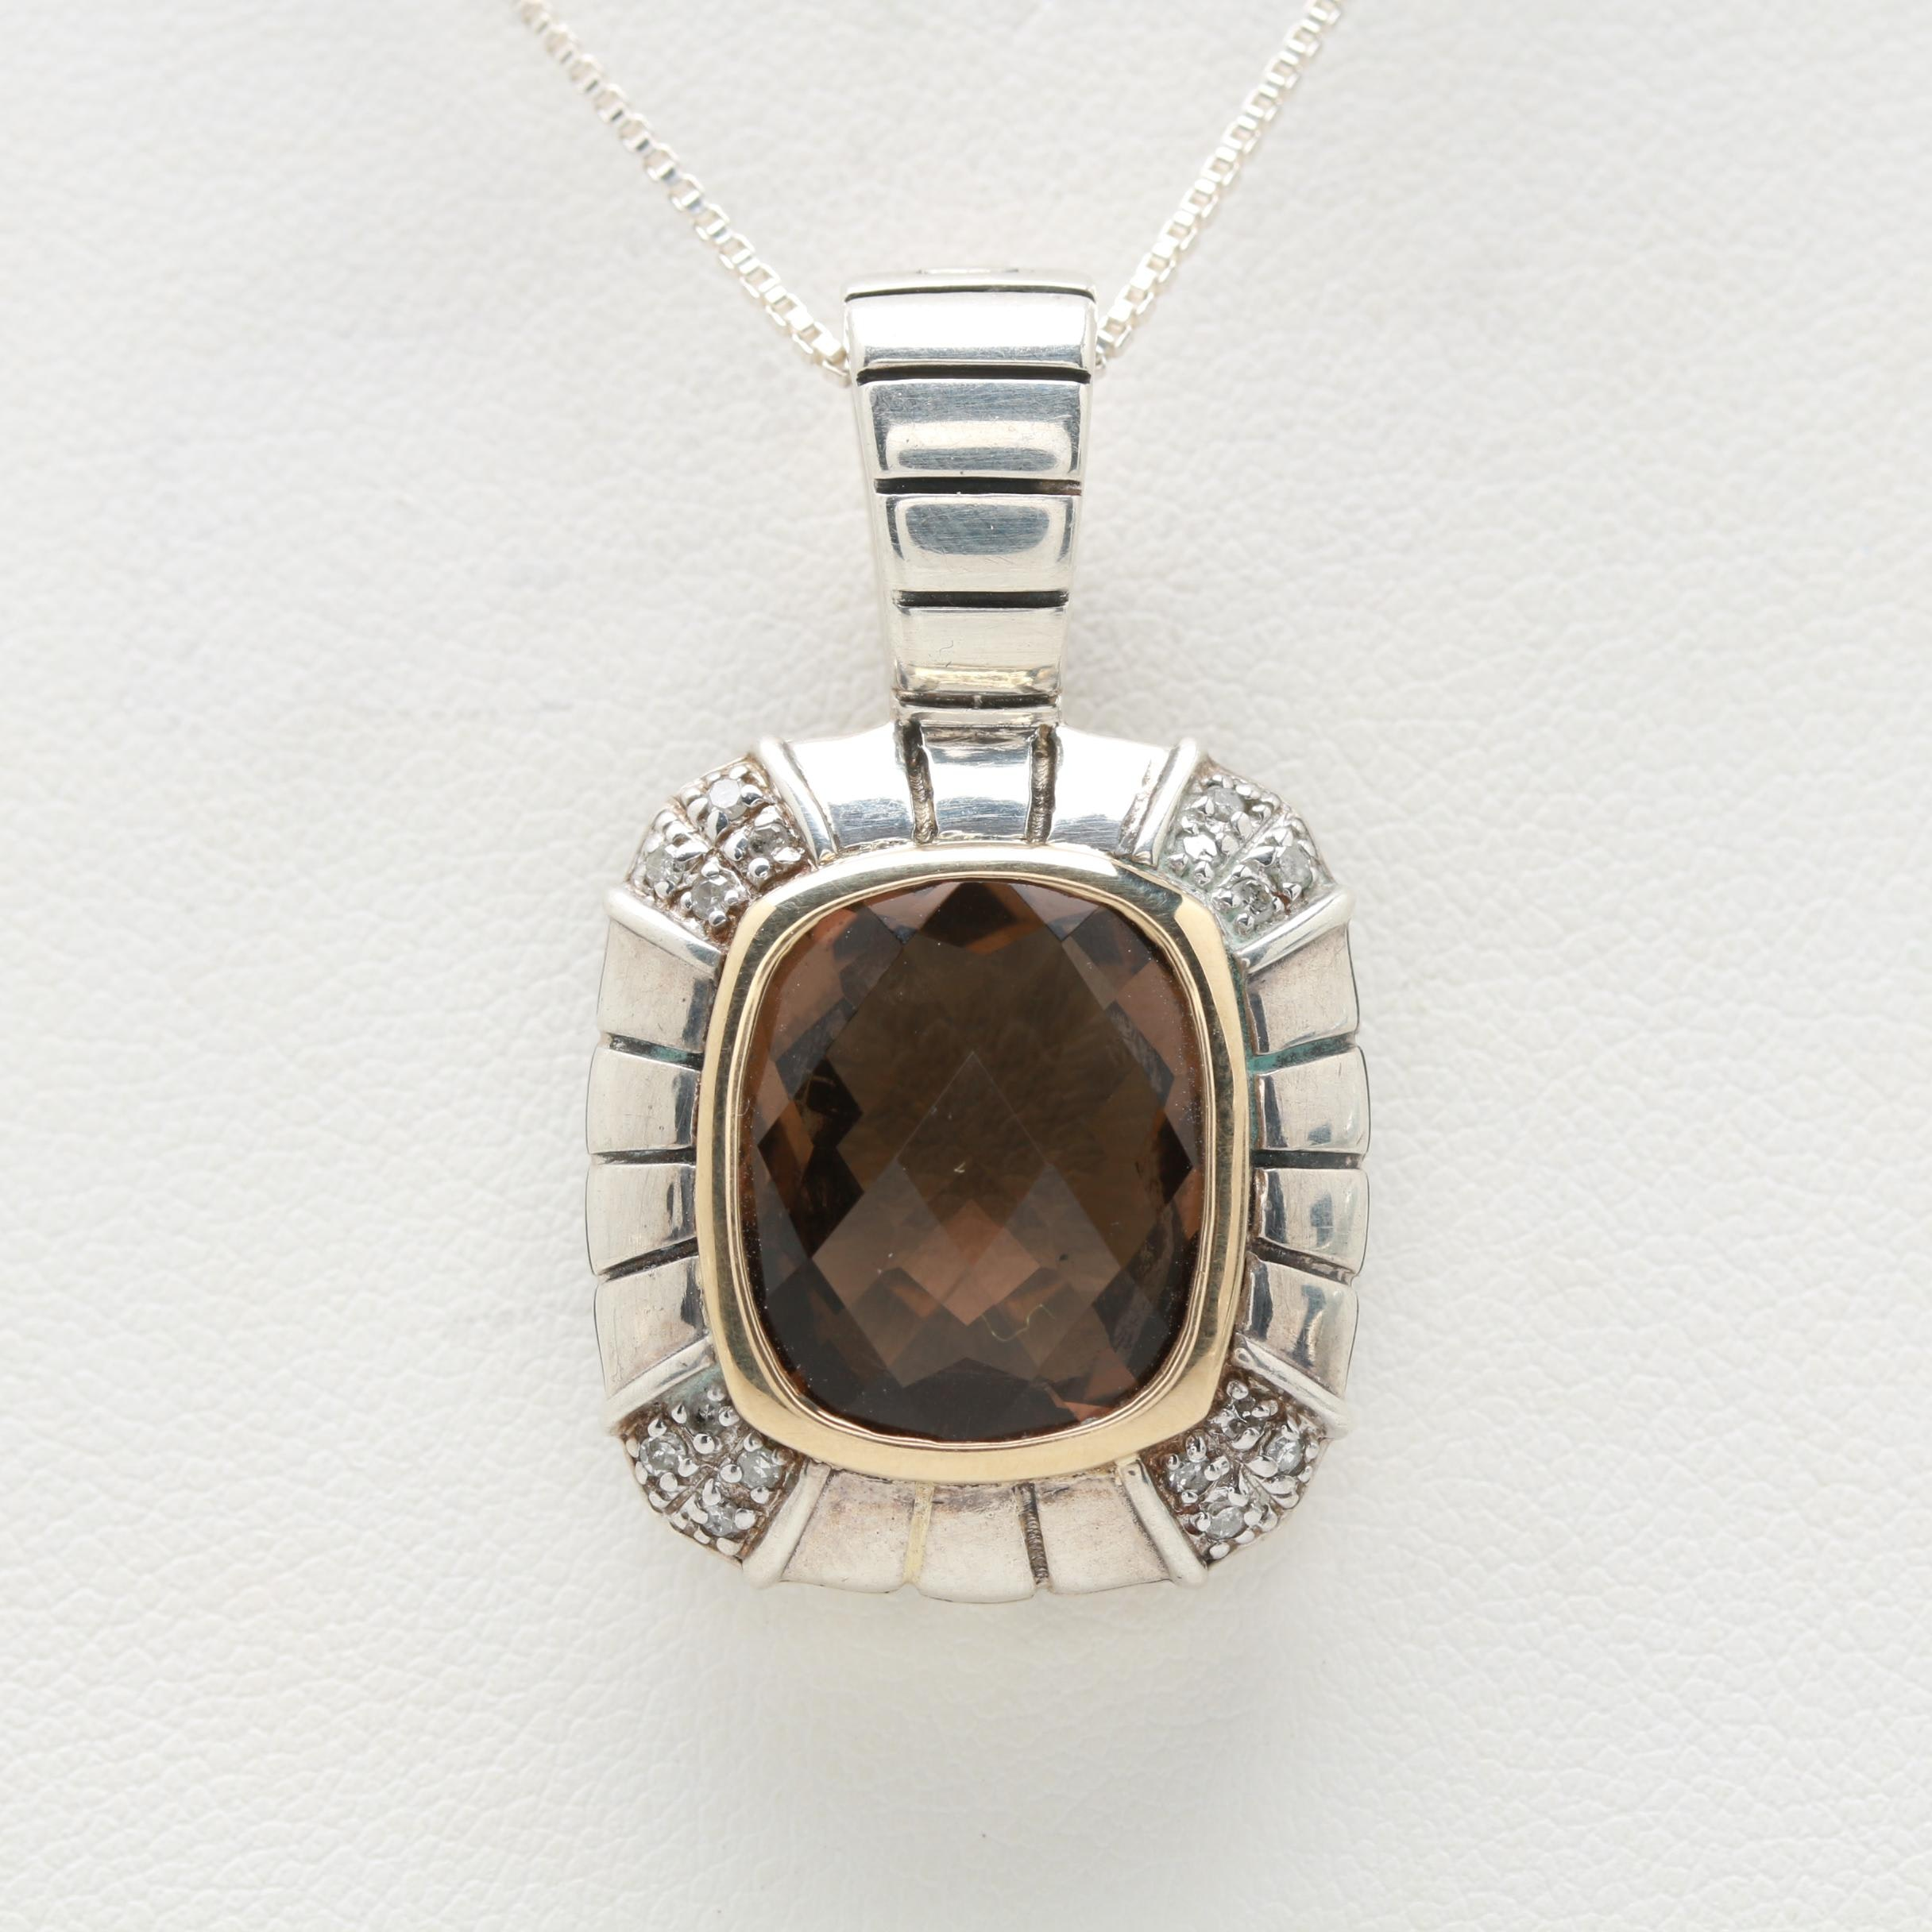 Sterling Smoky Quartz and Diamond Enhancer Pendant Necklace with 14K Accent